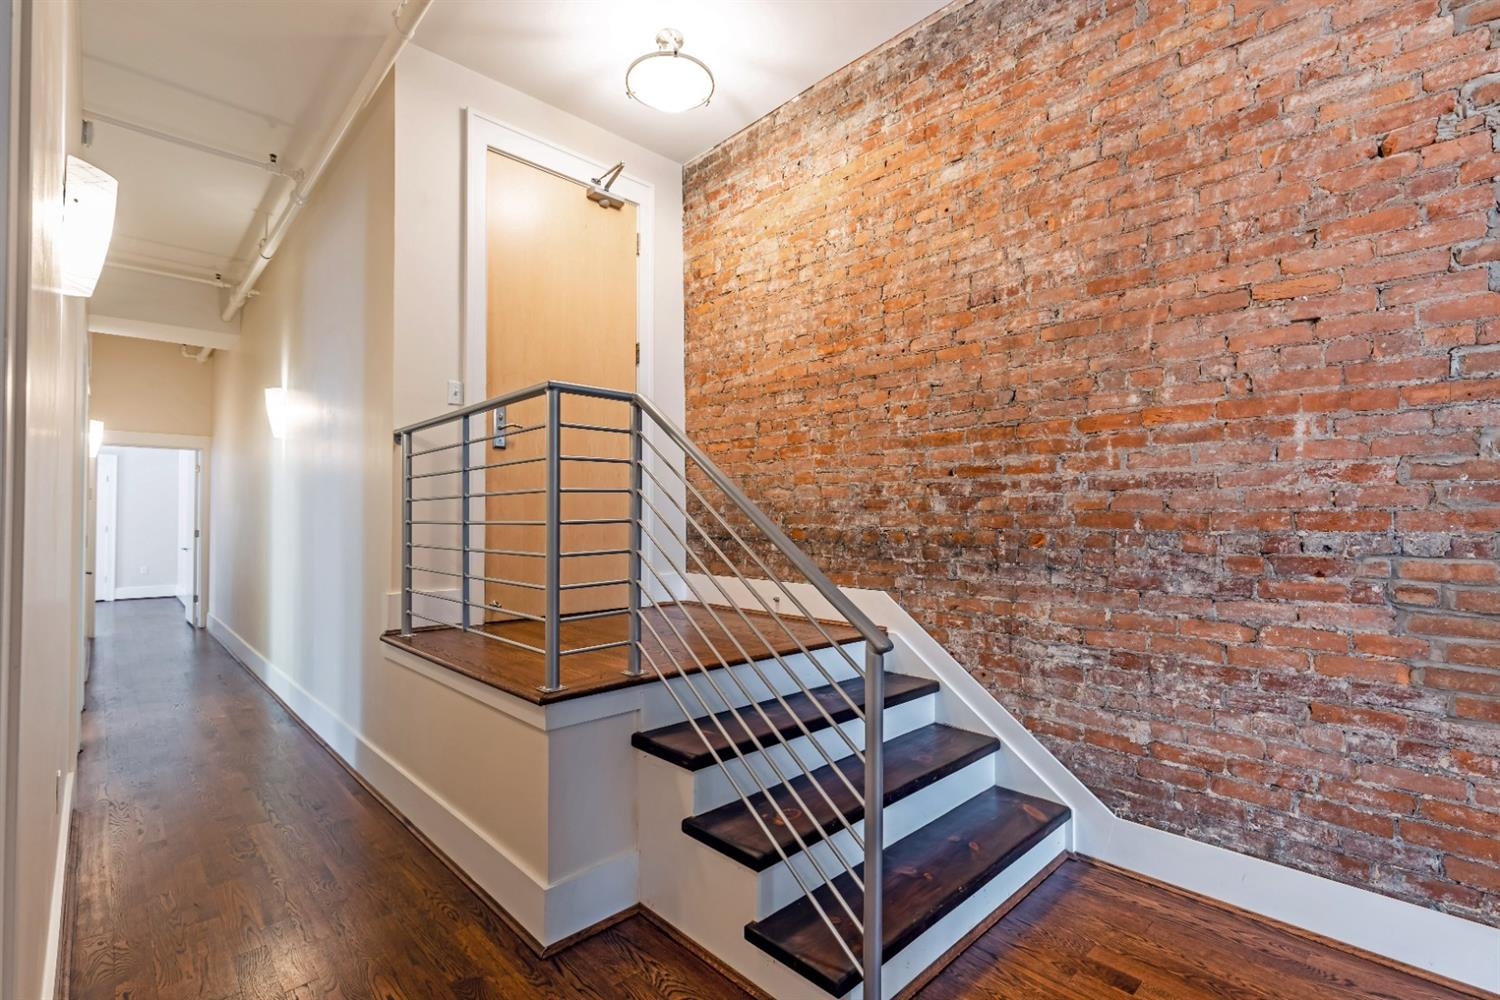 All new hardwood flooring throughout with exposed brick wall and large walk-in entry closet.